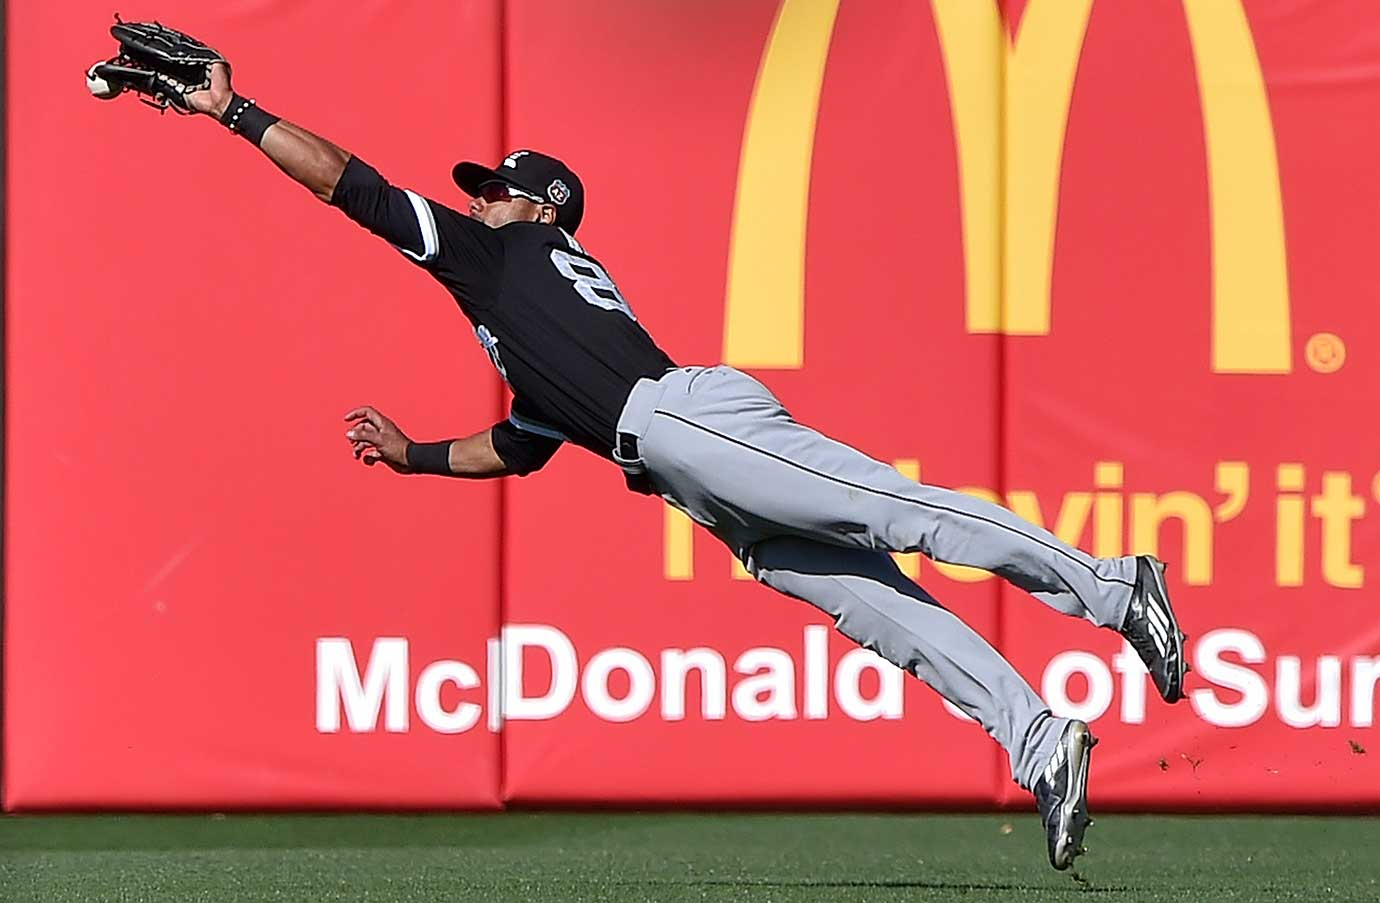 Chicago White Sox center fielder Jacob May deflects an RBI double hit by Omar Infante of Kansas City.